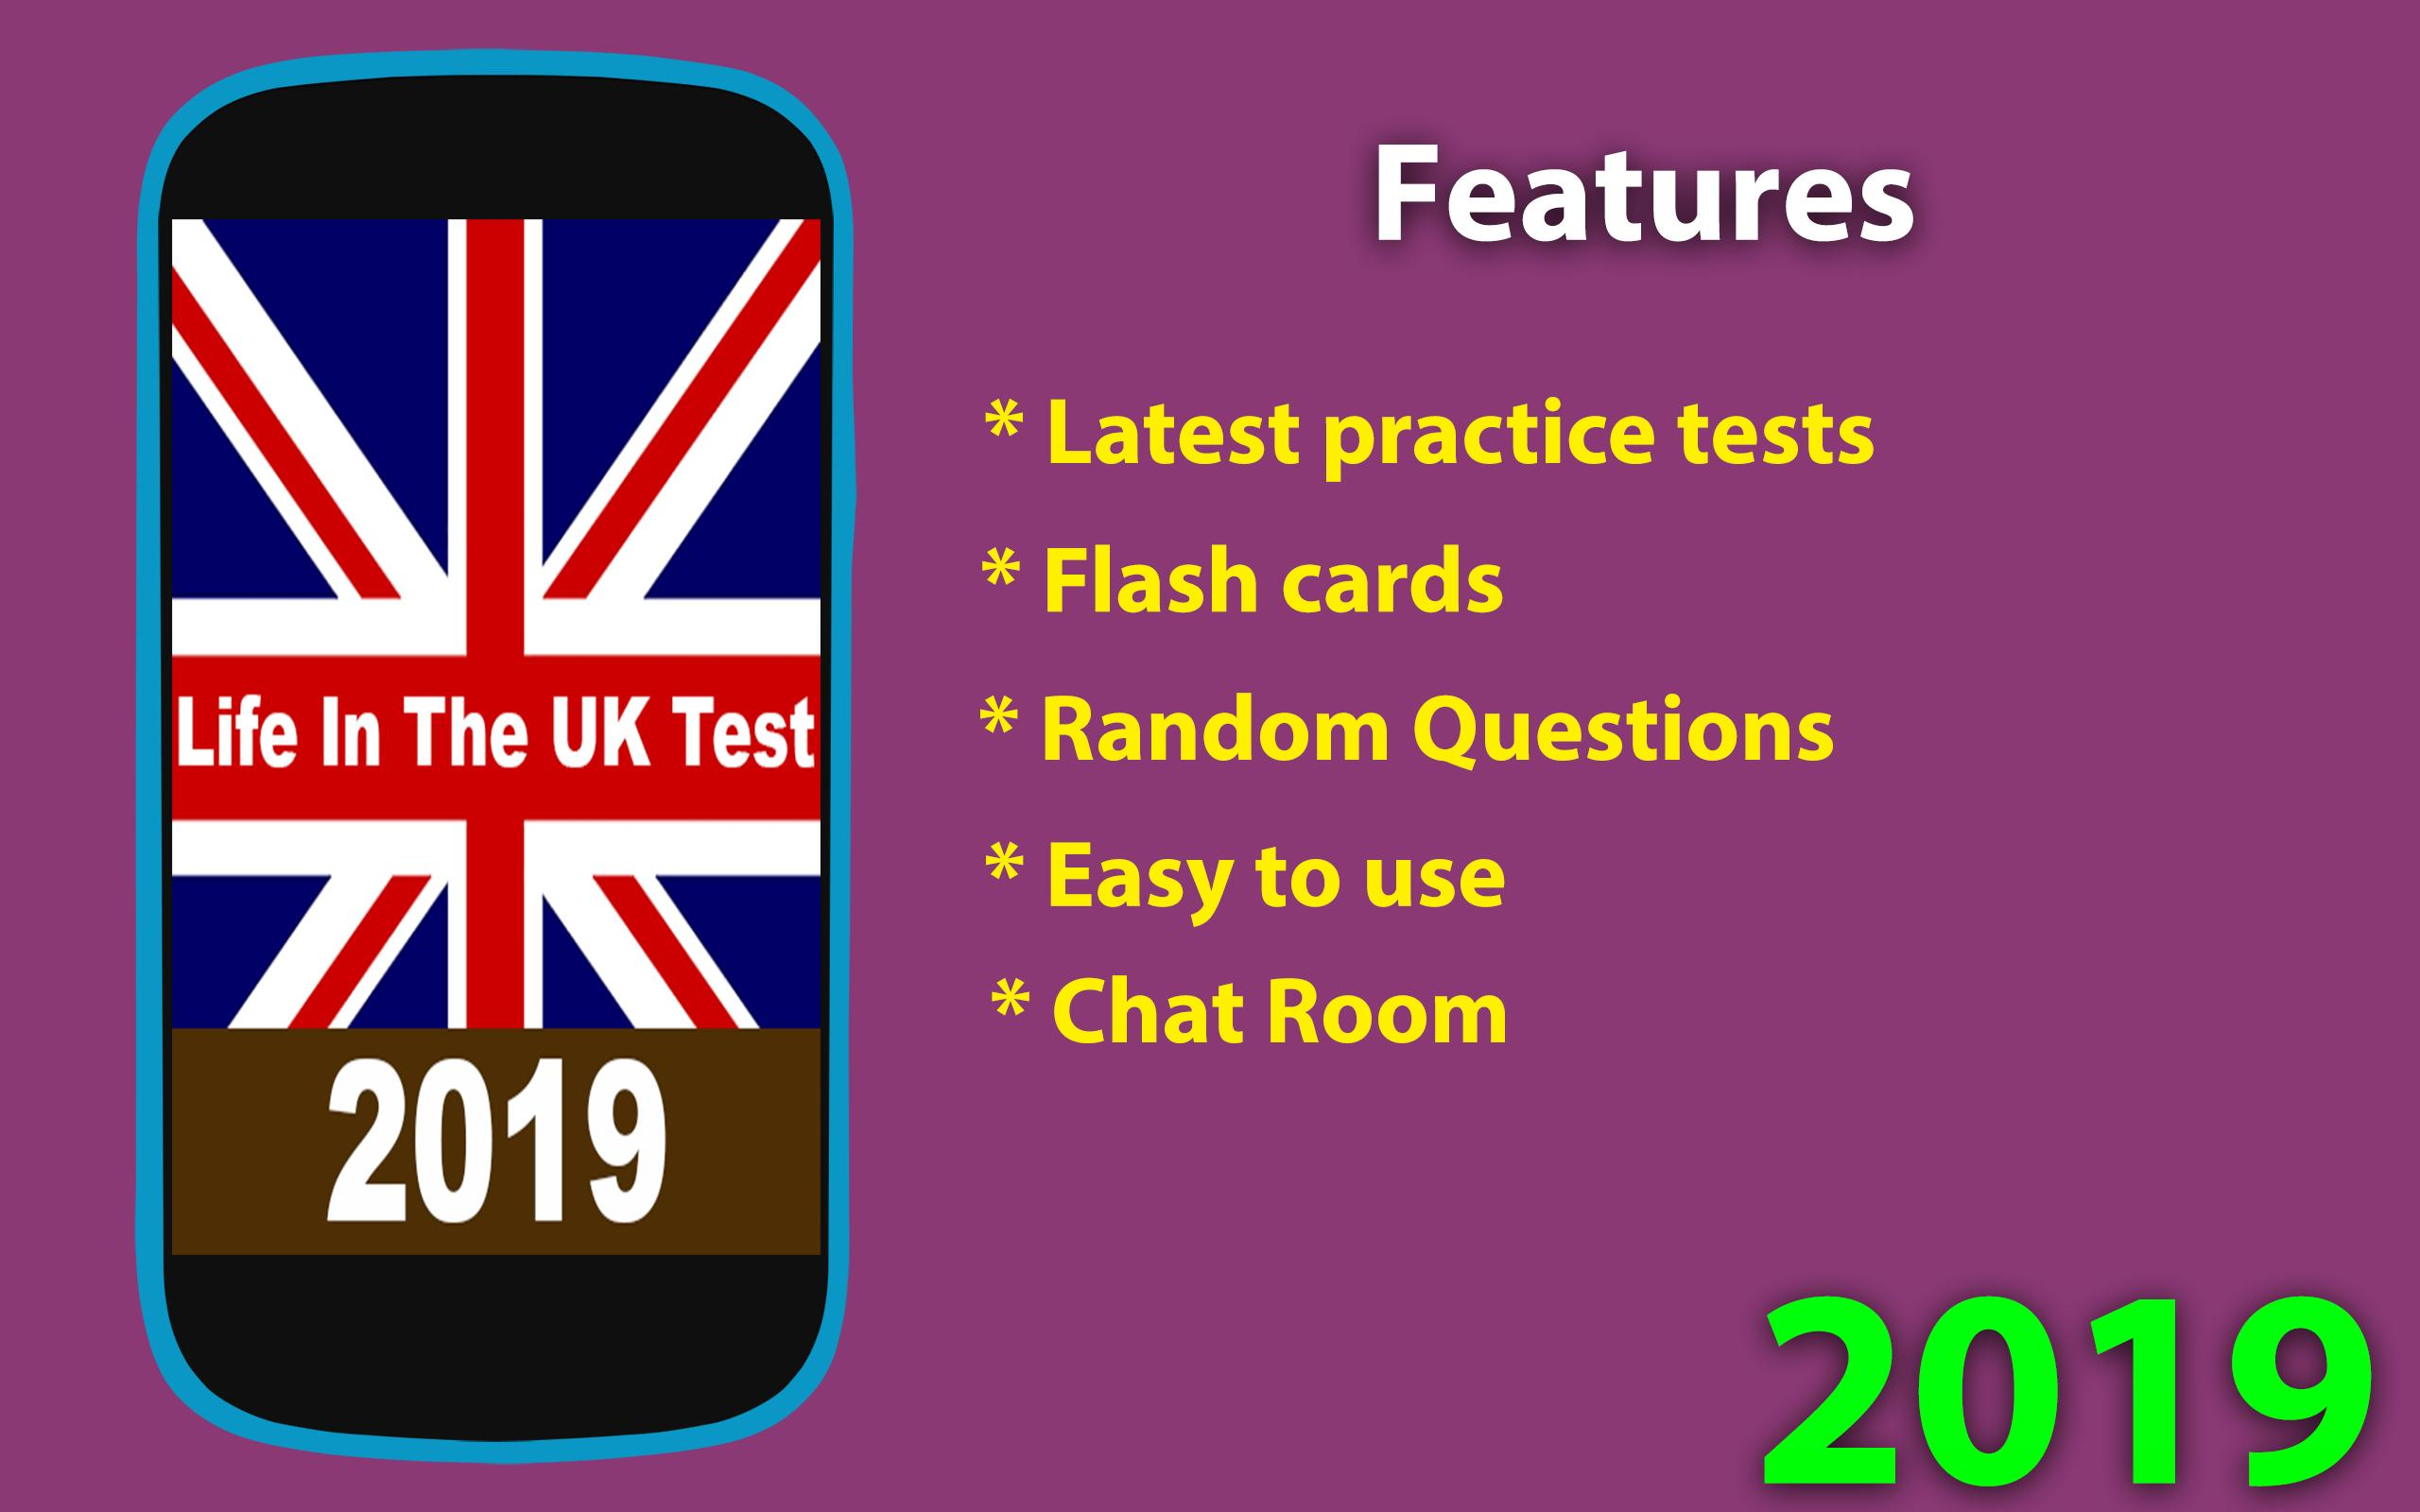 Life in the UK Test for Android - APK Download